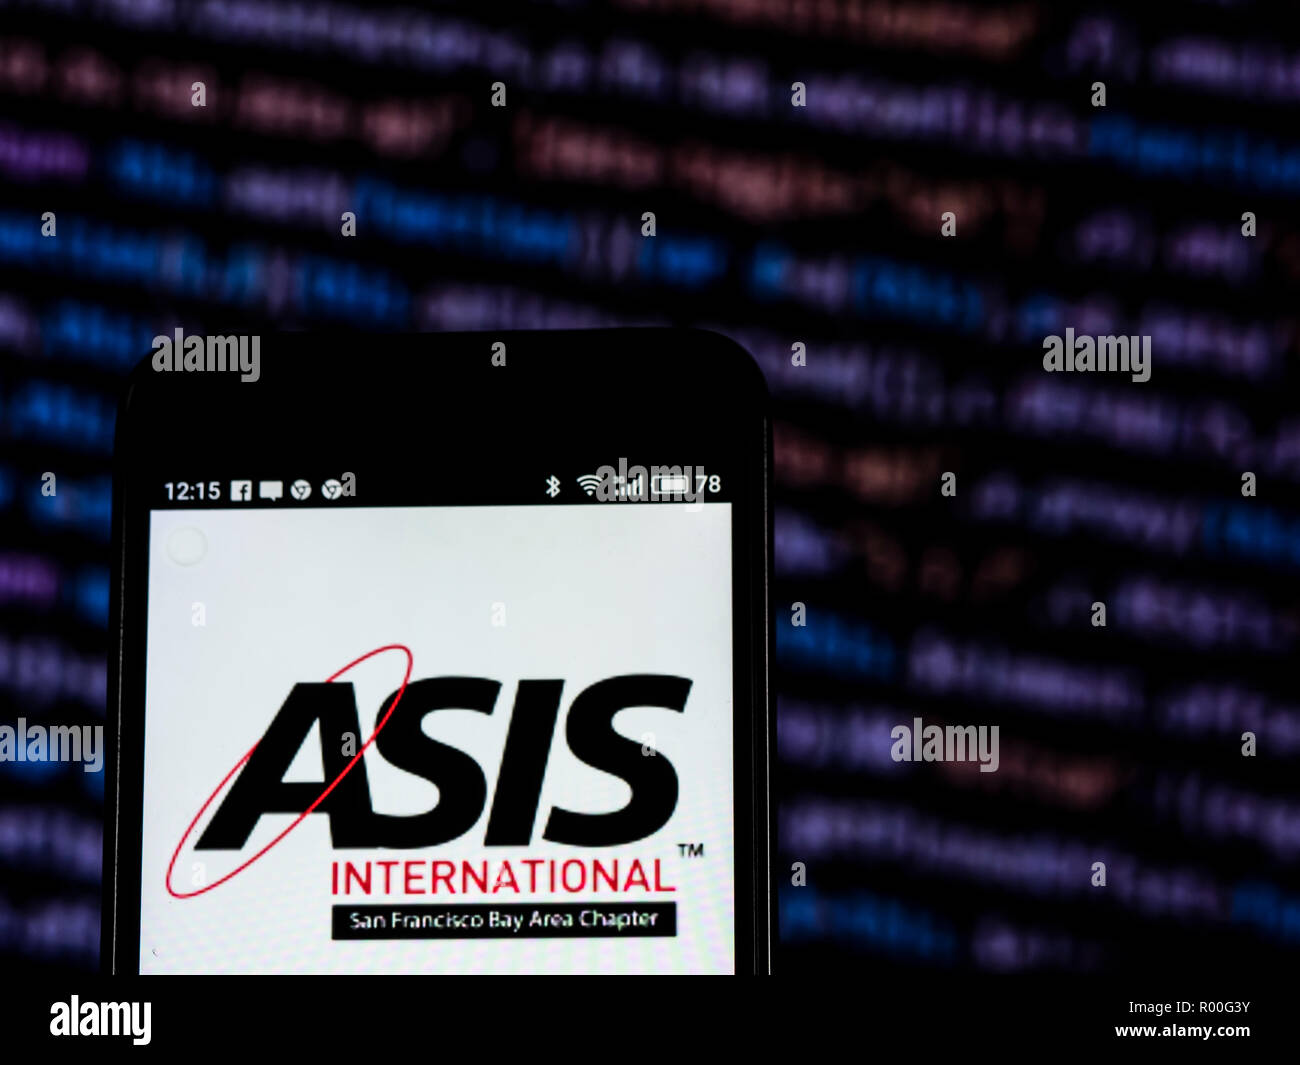 ASIS International Professional organizations company logo seen displayed on smart phone. ASIS International is a professional organization for security professionals. It issues various certifications, standards, and guidelines for the security profession. - Stock Image